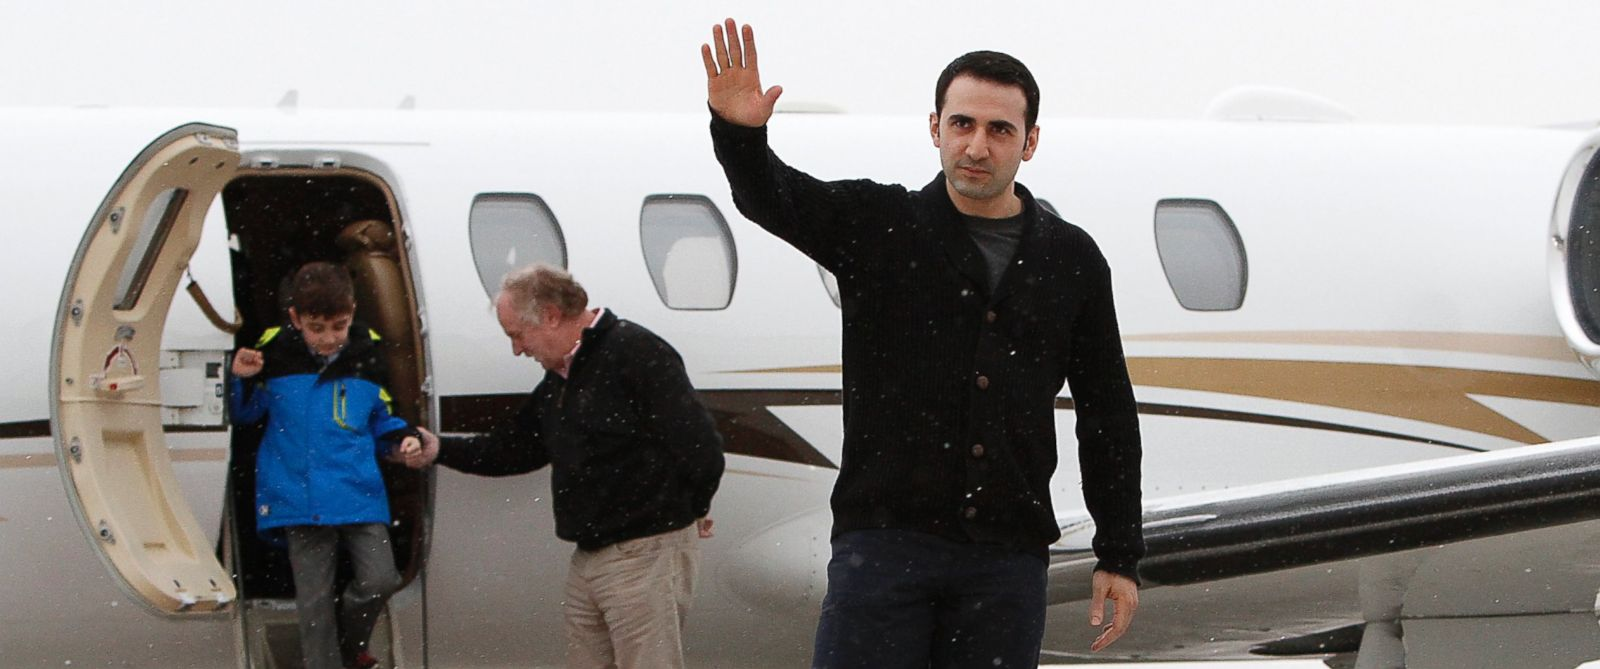 PHOTO: Amir Hekmati, a Marine held in Iran, returns home on January 21, 2016 in Flint, Michigan. Hekmati was released from an Iranian prison this week after being held there since August 2011.